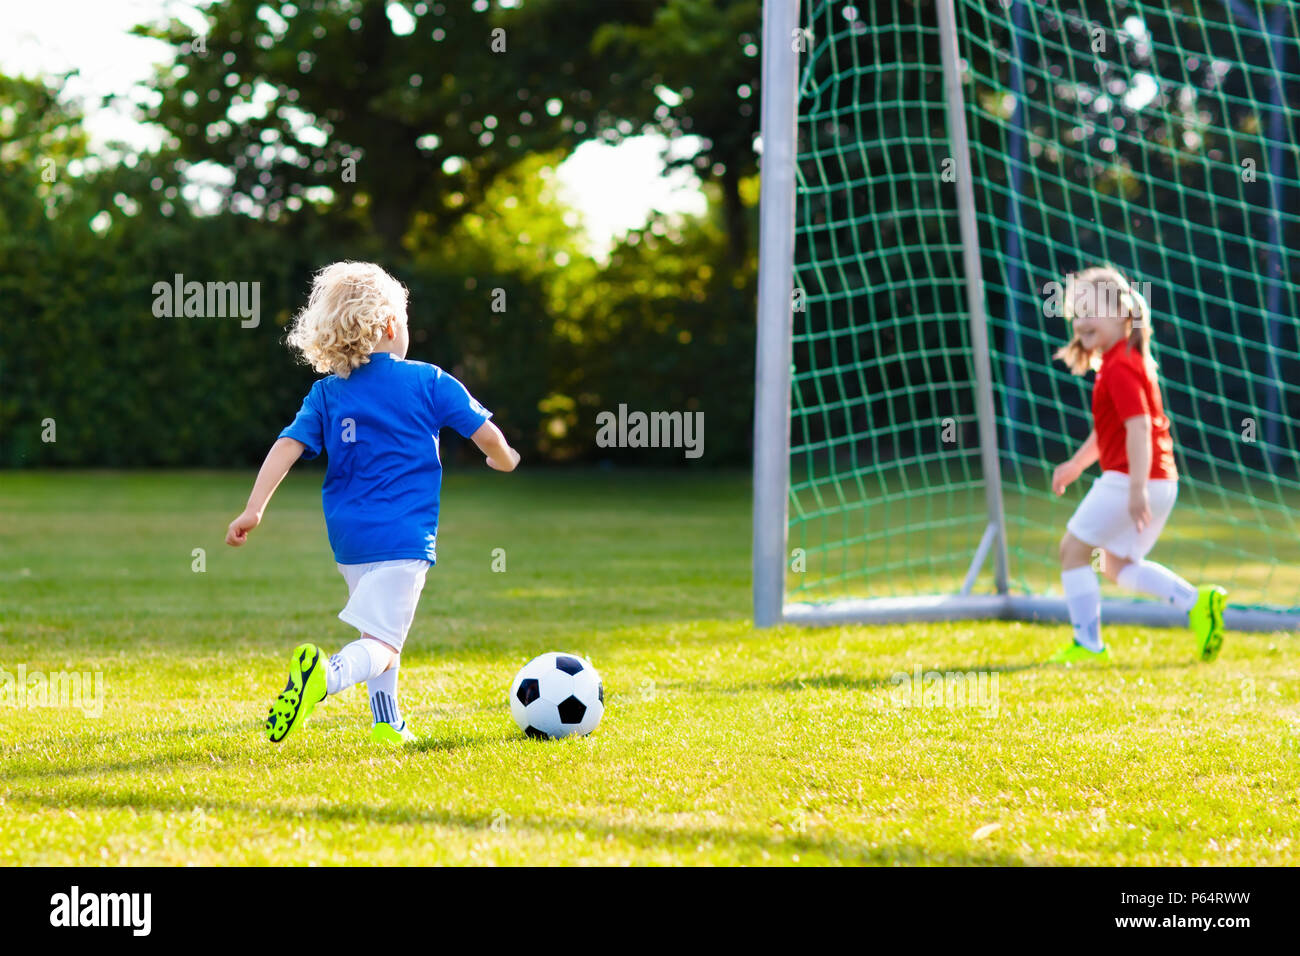 Boot Camp For Kids Stock Photos & Boot Camp For Kids Stock ...